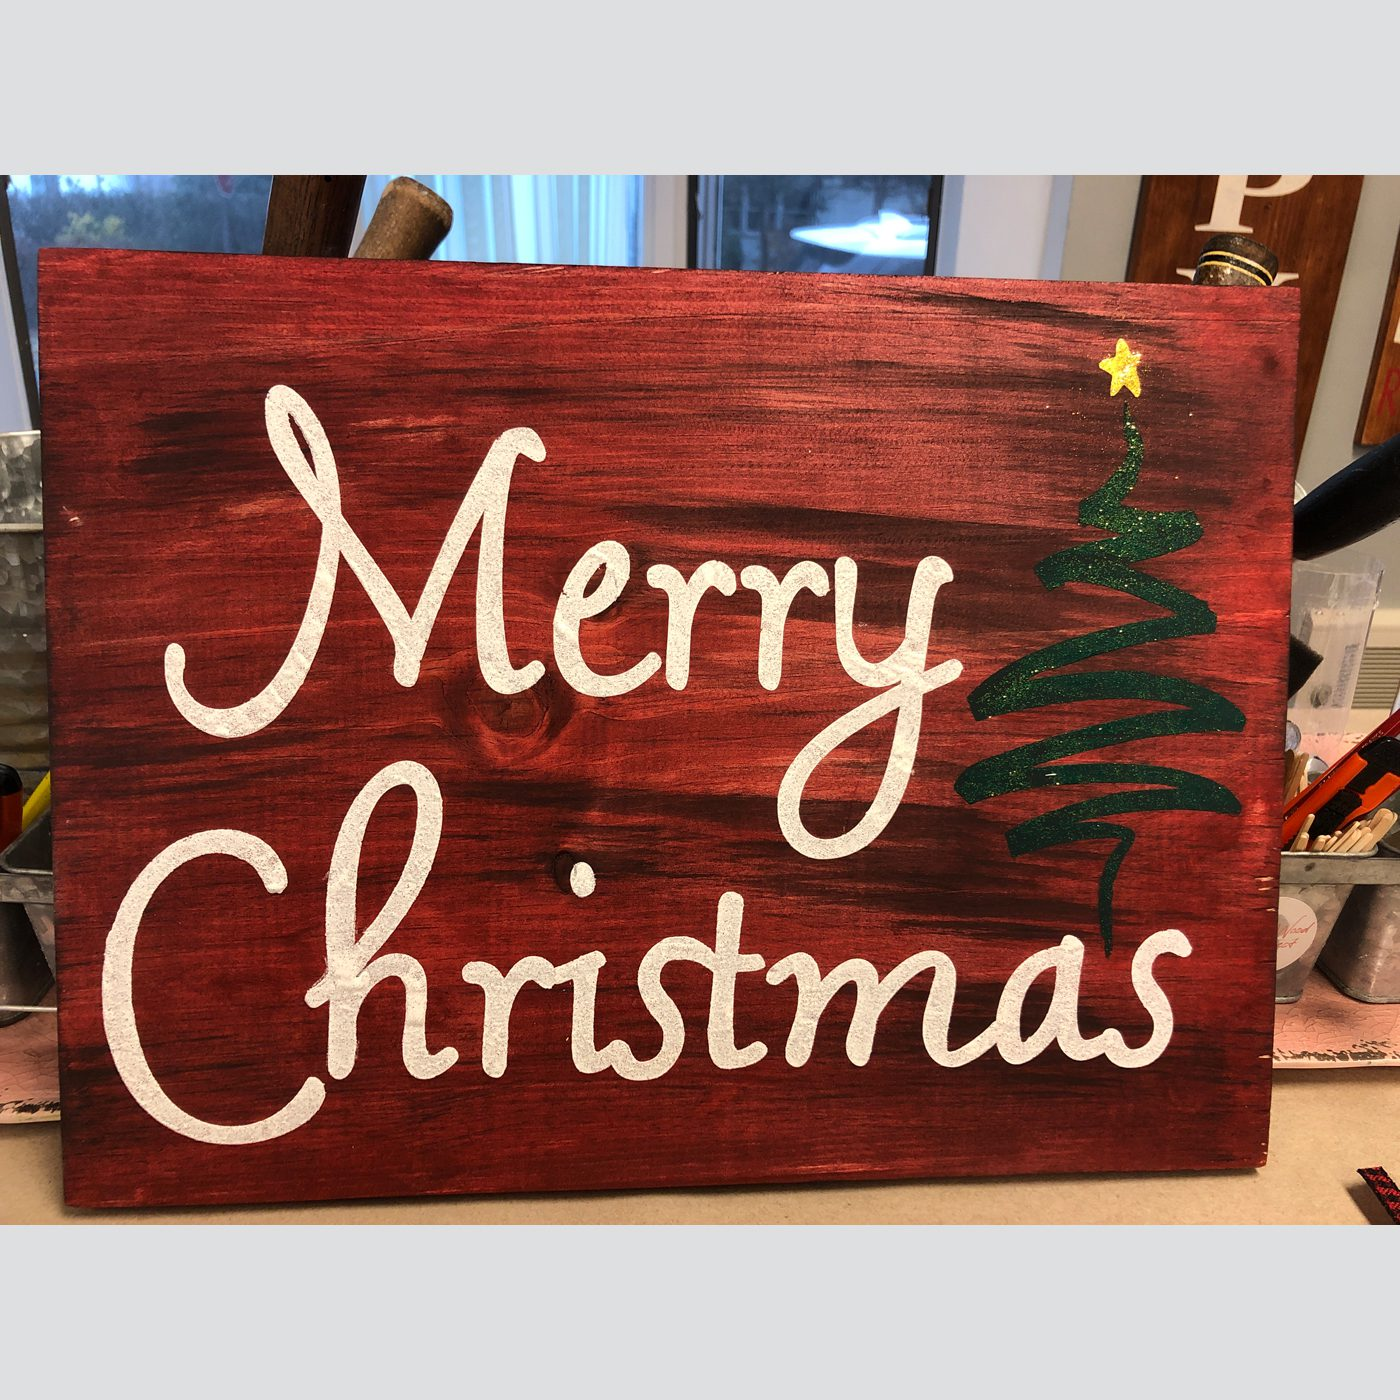 Merry Christmas with Tree DIY wood project